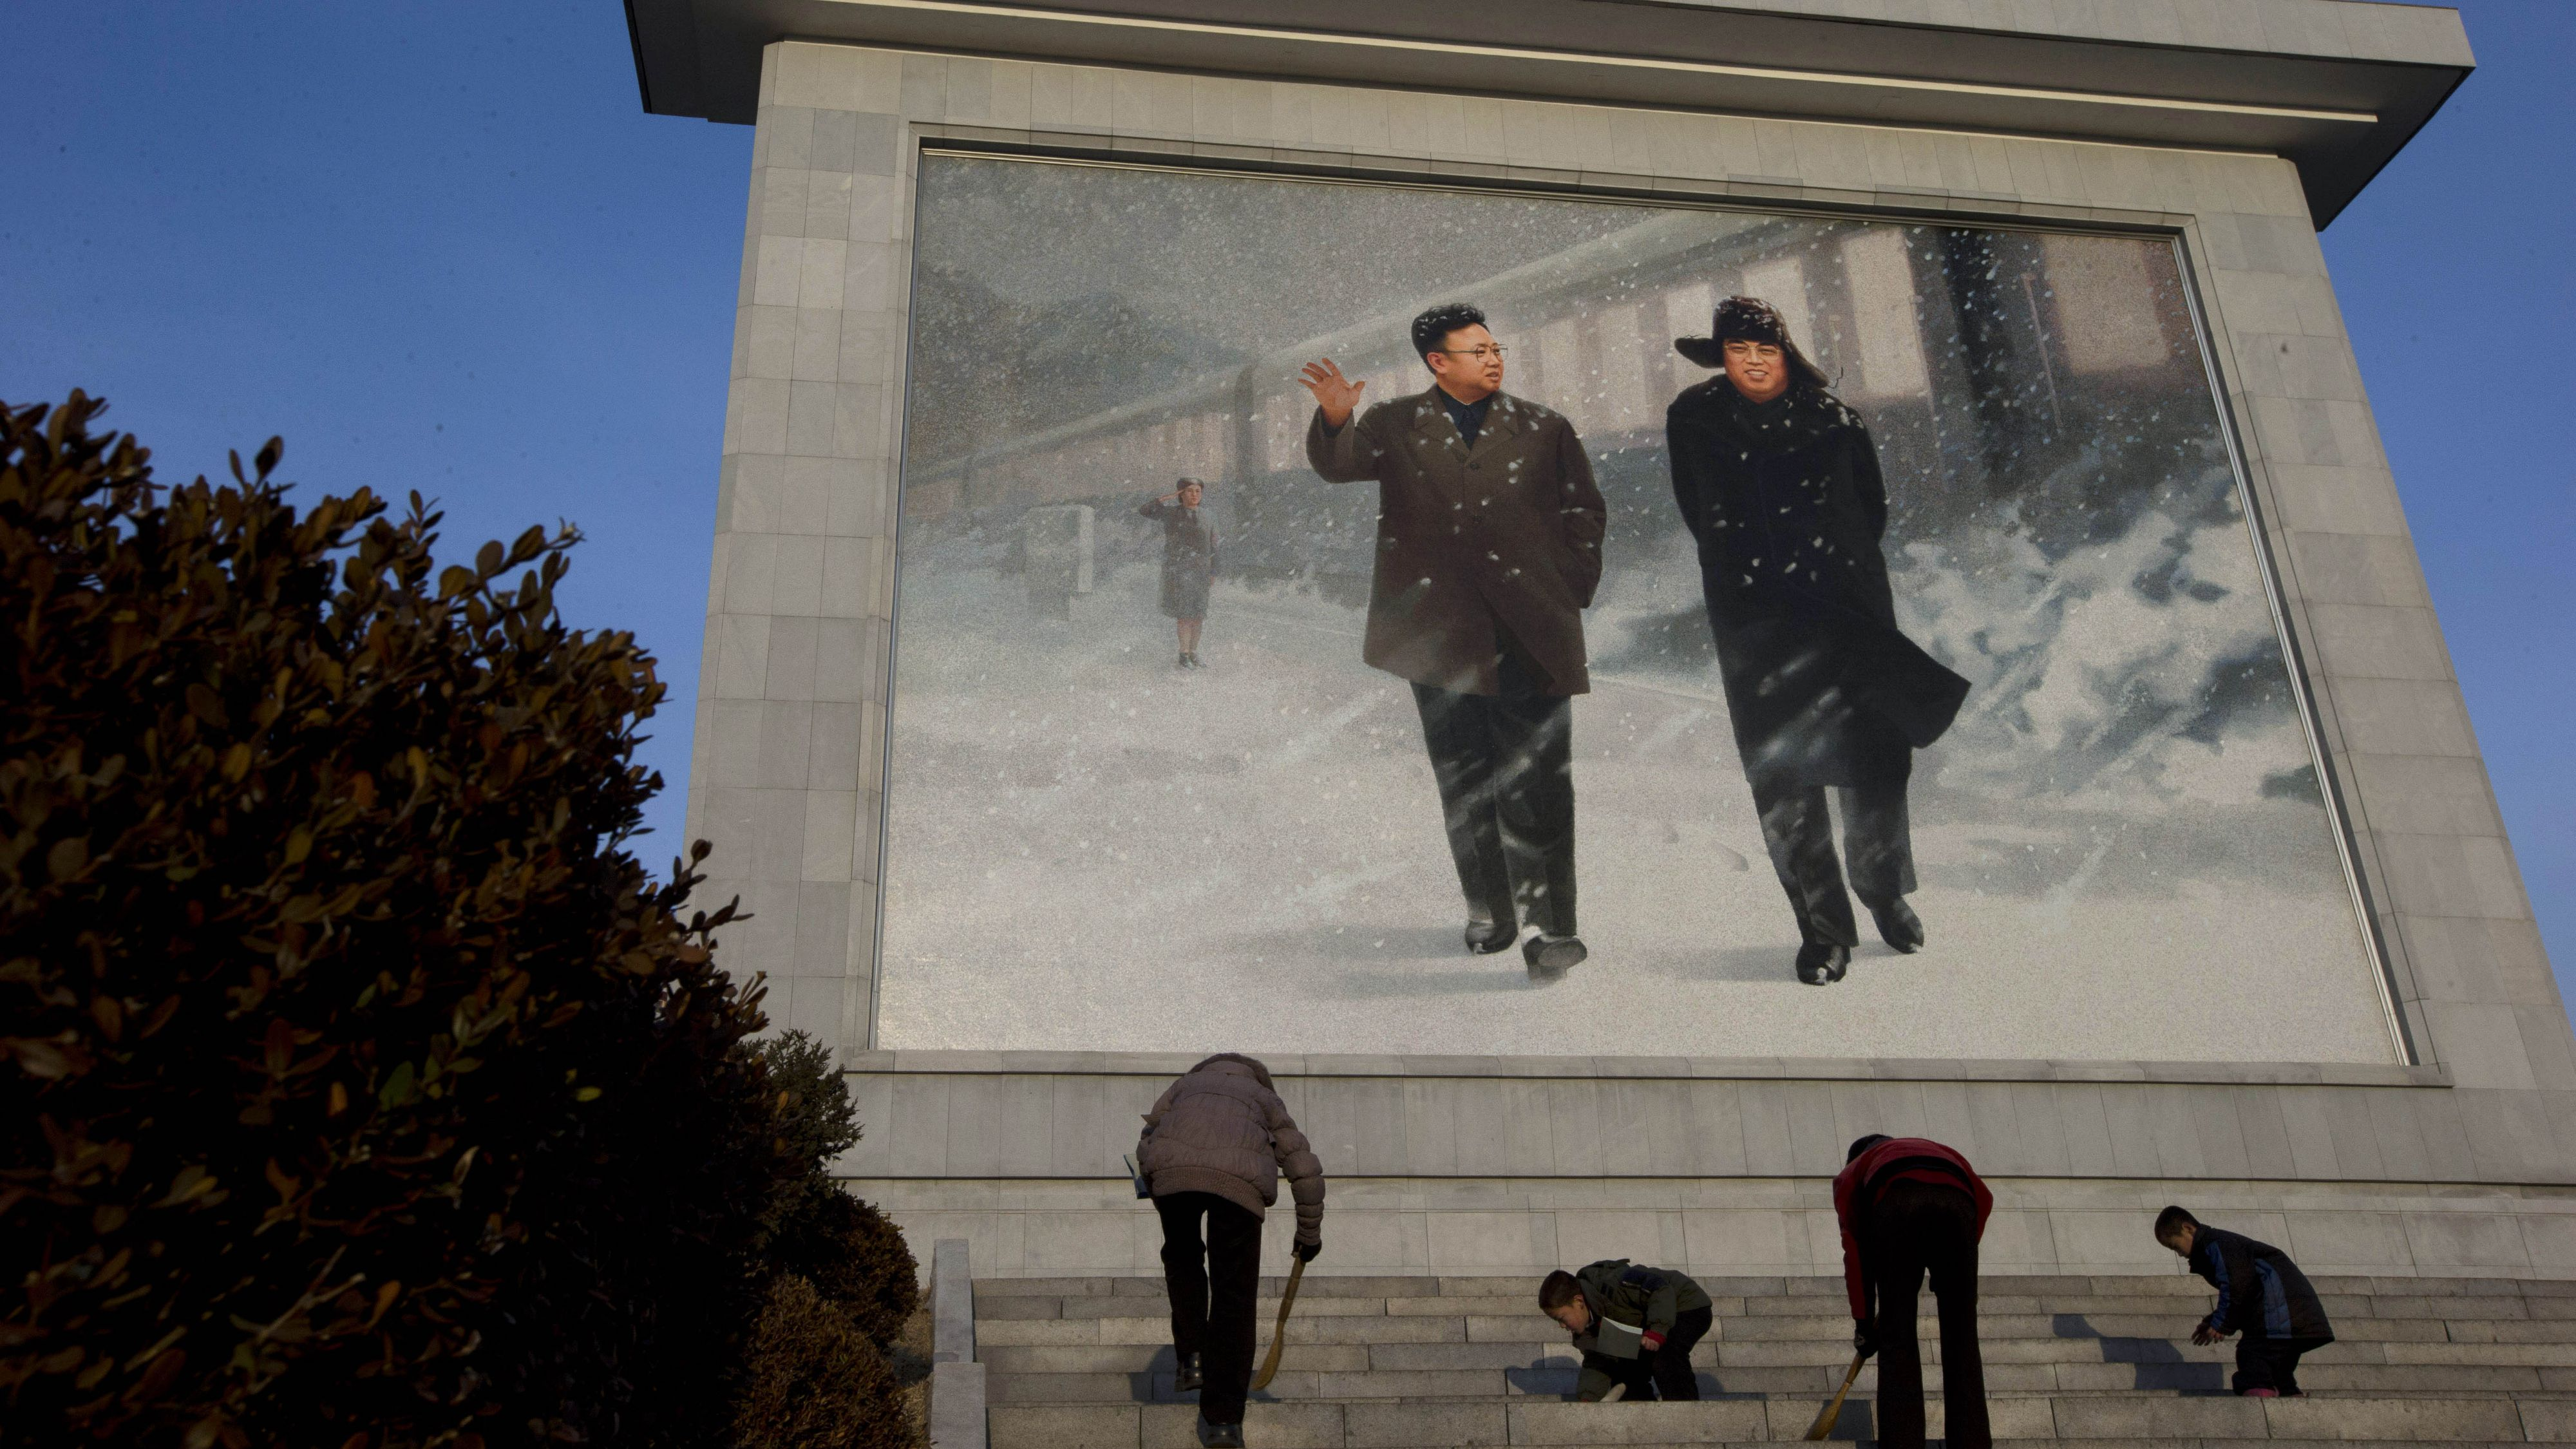 A giant portrait of late North Korean leaders Kim Jong Il and Kim Il Sung in Pyongyang